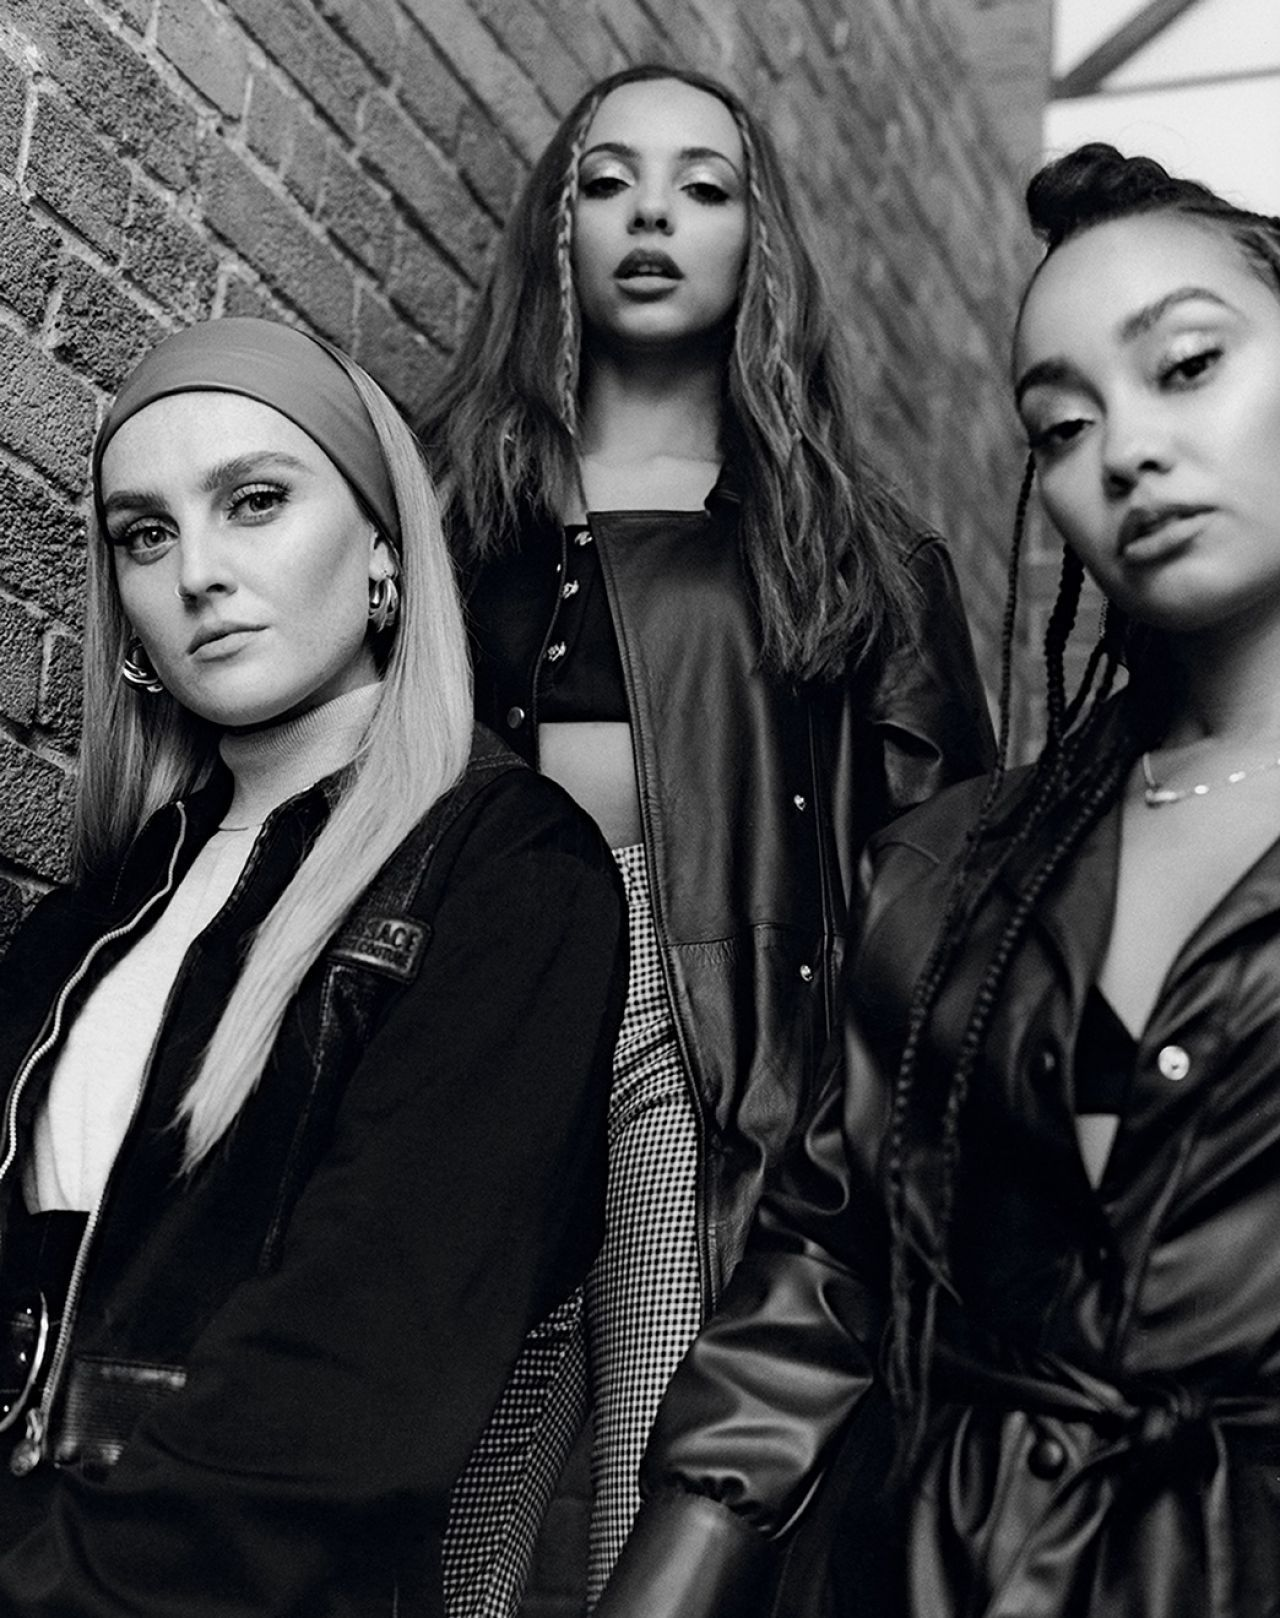 Pin by Hans on Little Mix❤ in 2019 | Little mix photoshoot